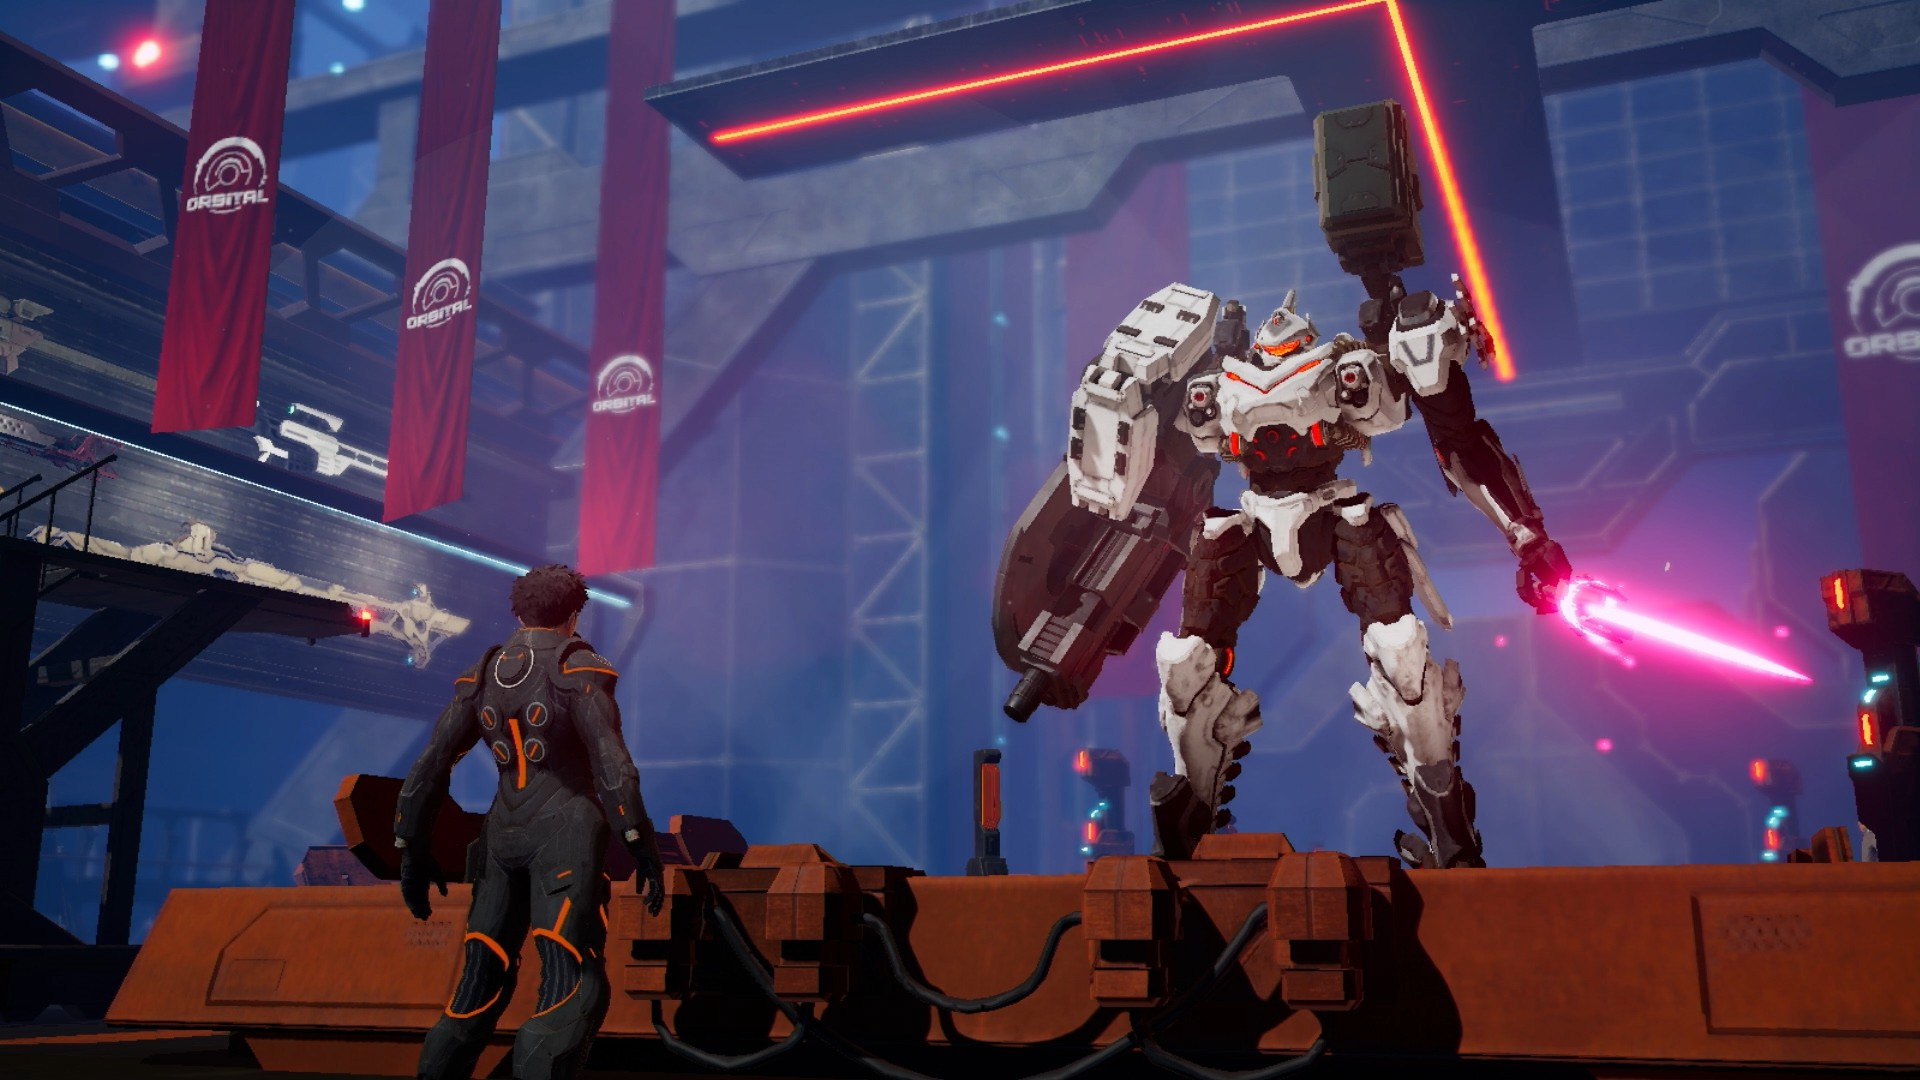 Daemon x Machina: Mech-Action Game Coming this September 13